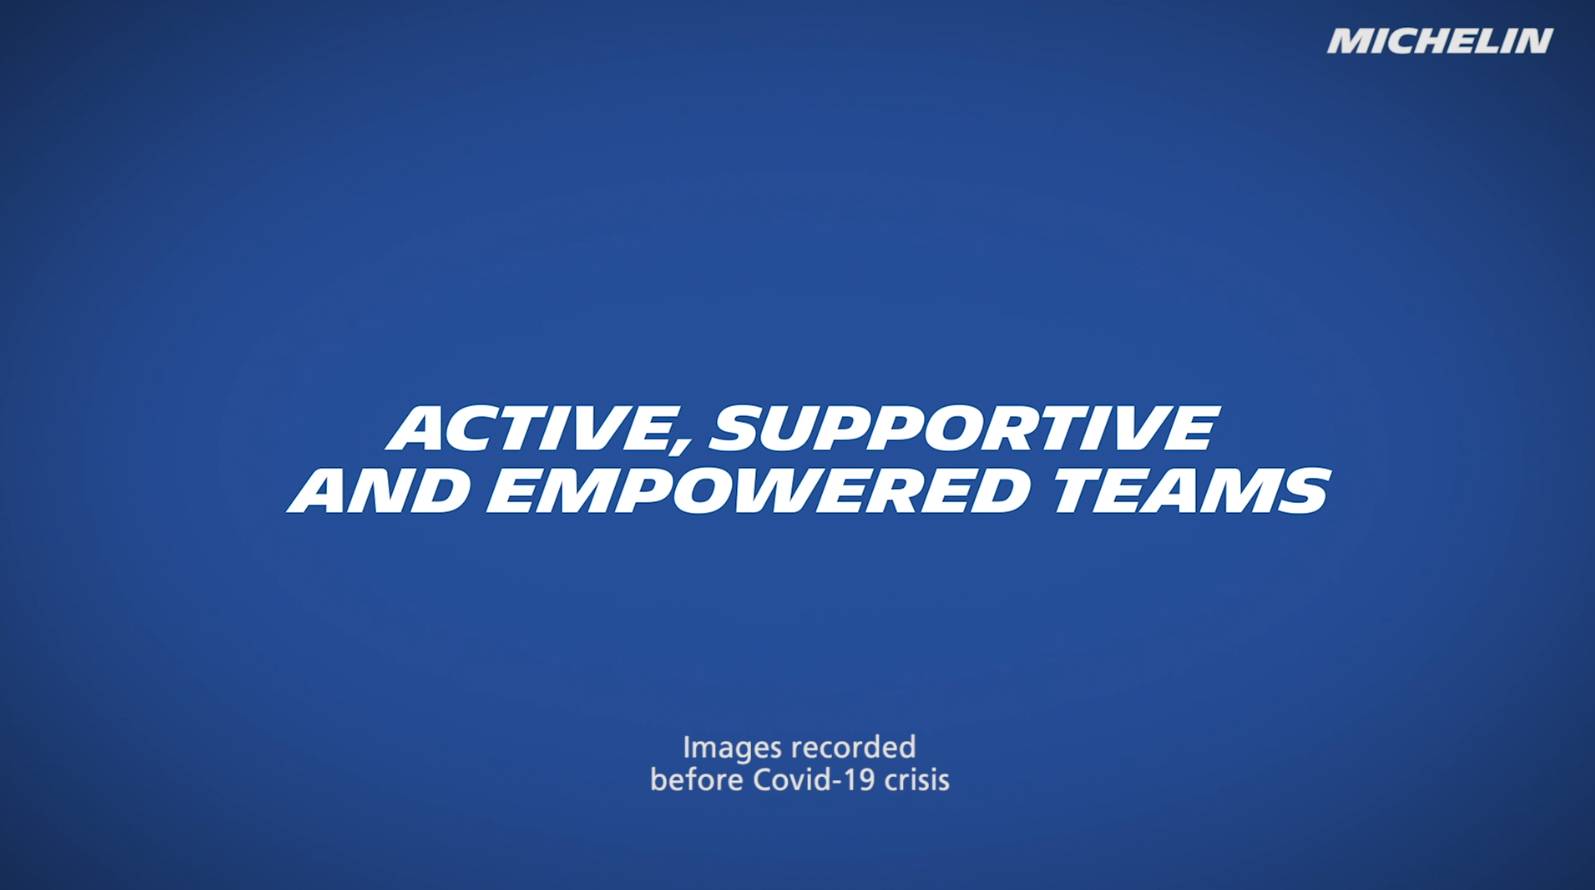 Discover: Active, supportive and empowered teams